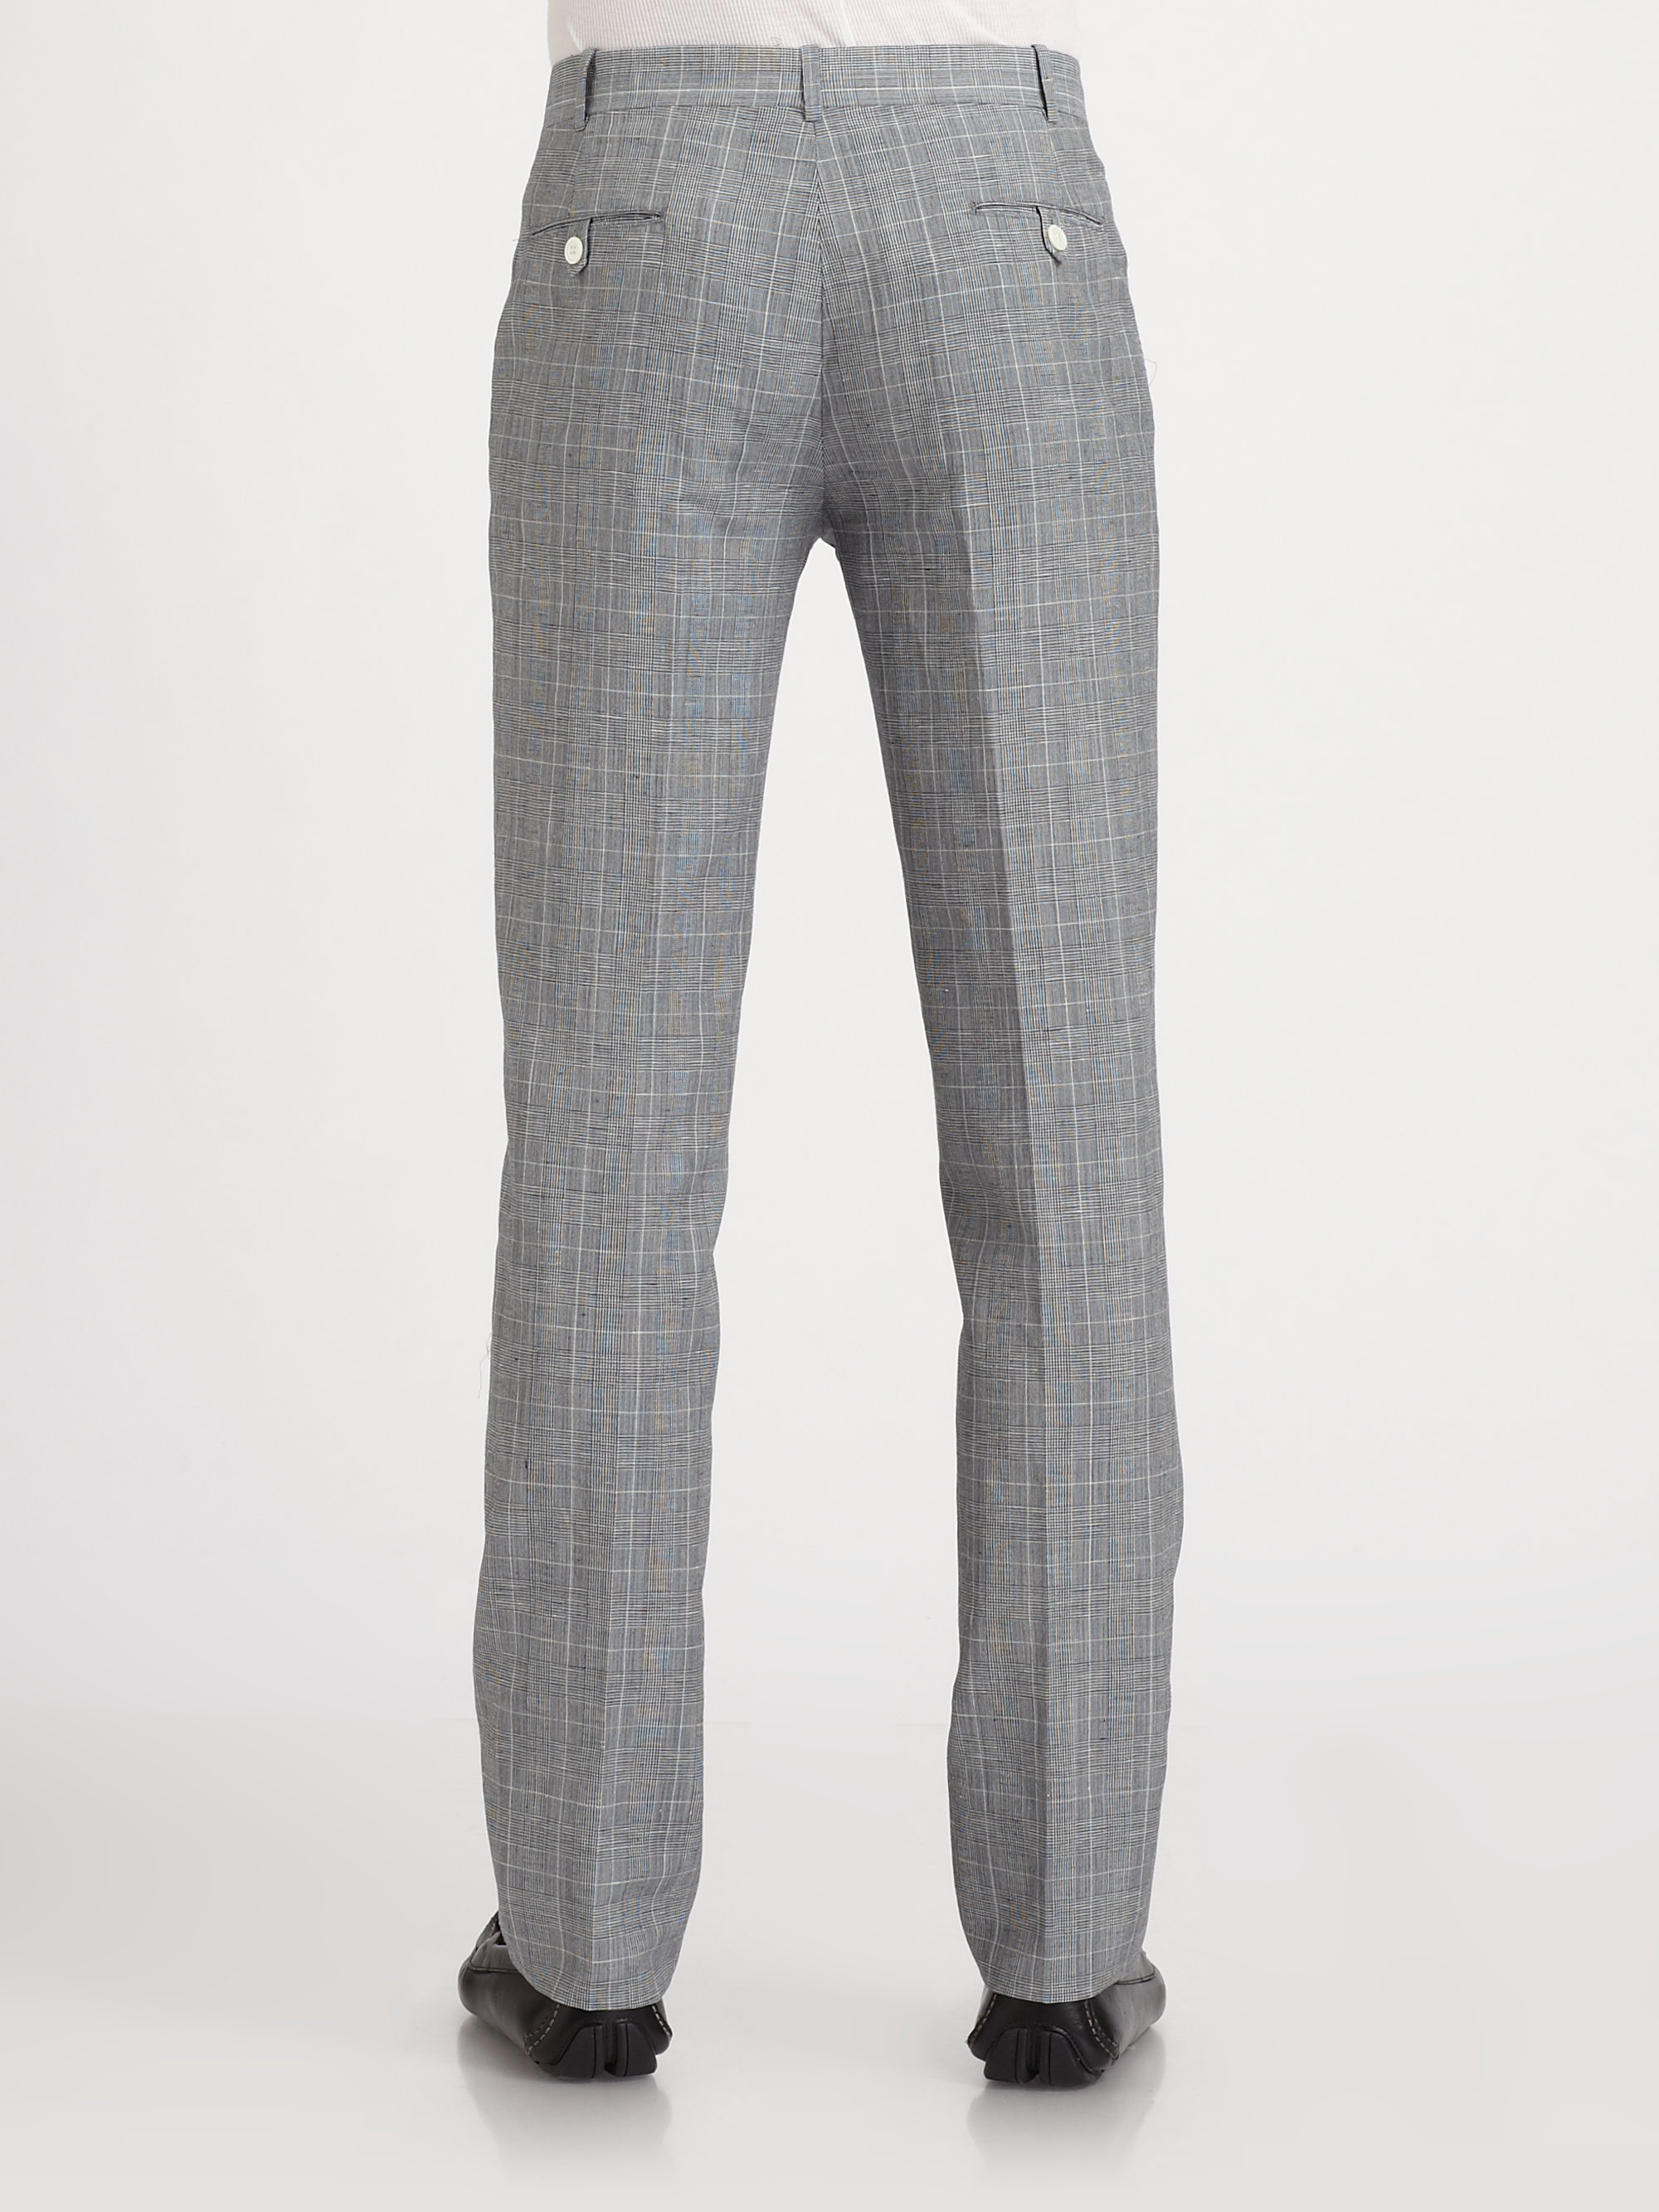 Band of outsiders Check Wool Linen Pants in Gray for Men | Lyst